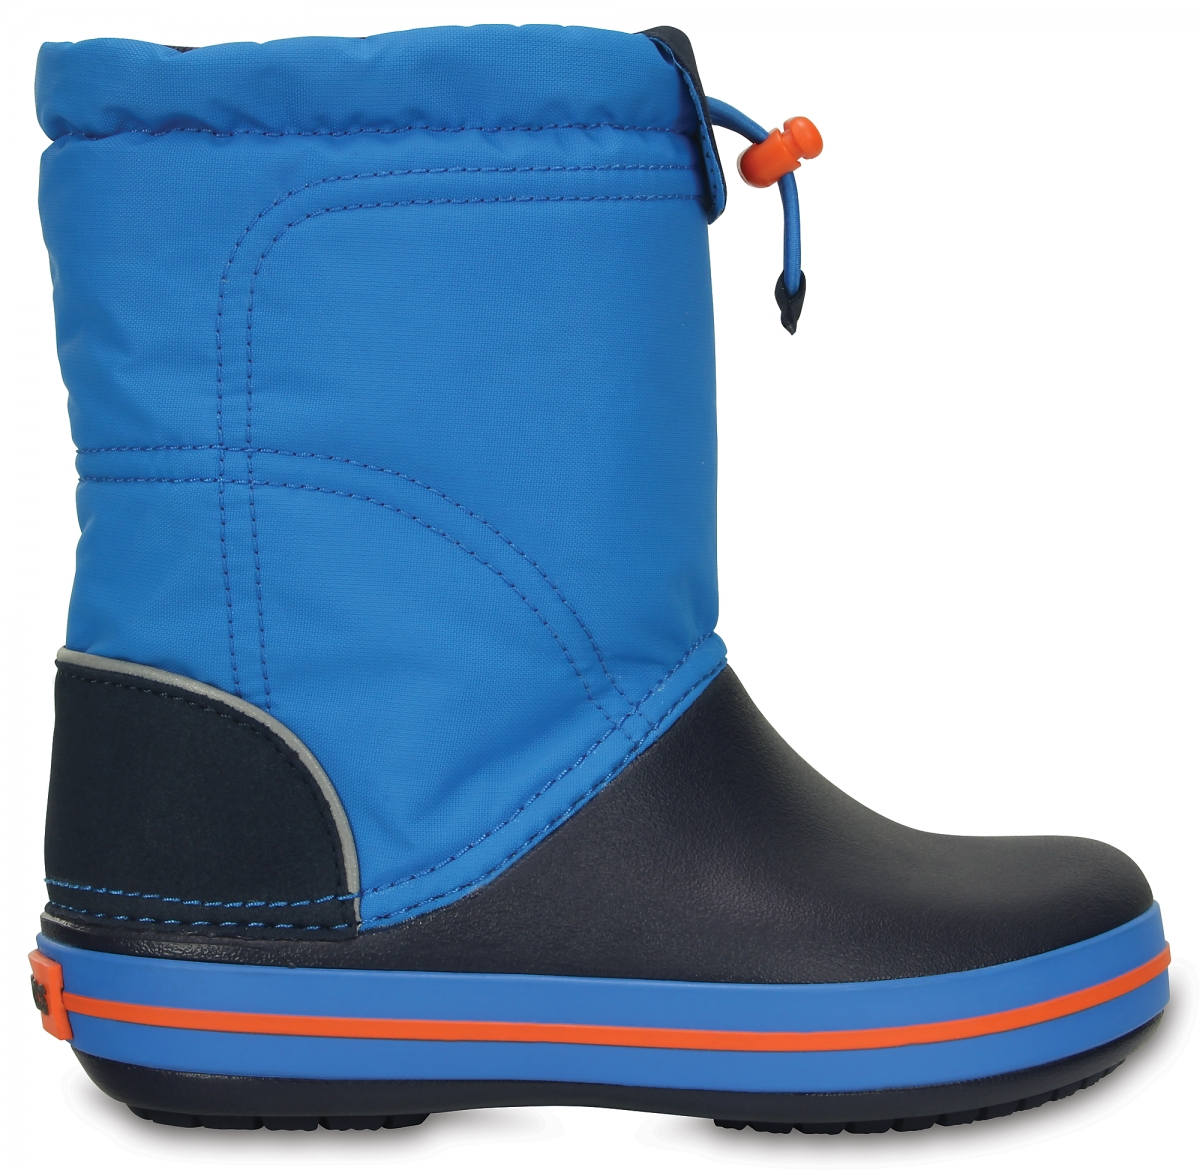 Crocs Crocband LodgePoint Boot Kids - Ocean/Navy, C12 (29-30)